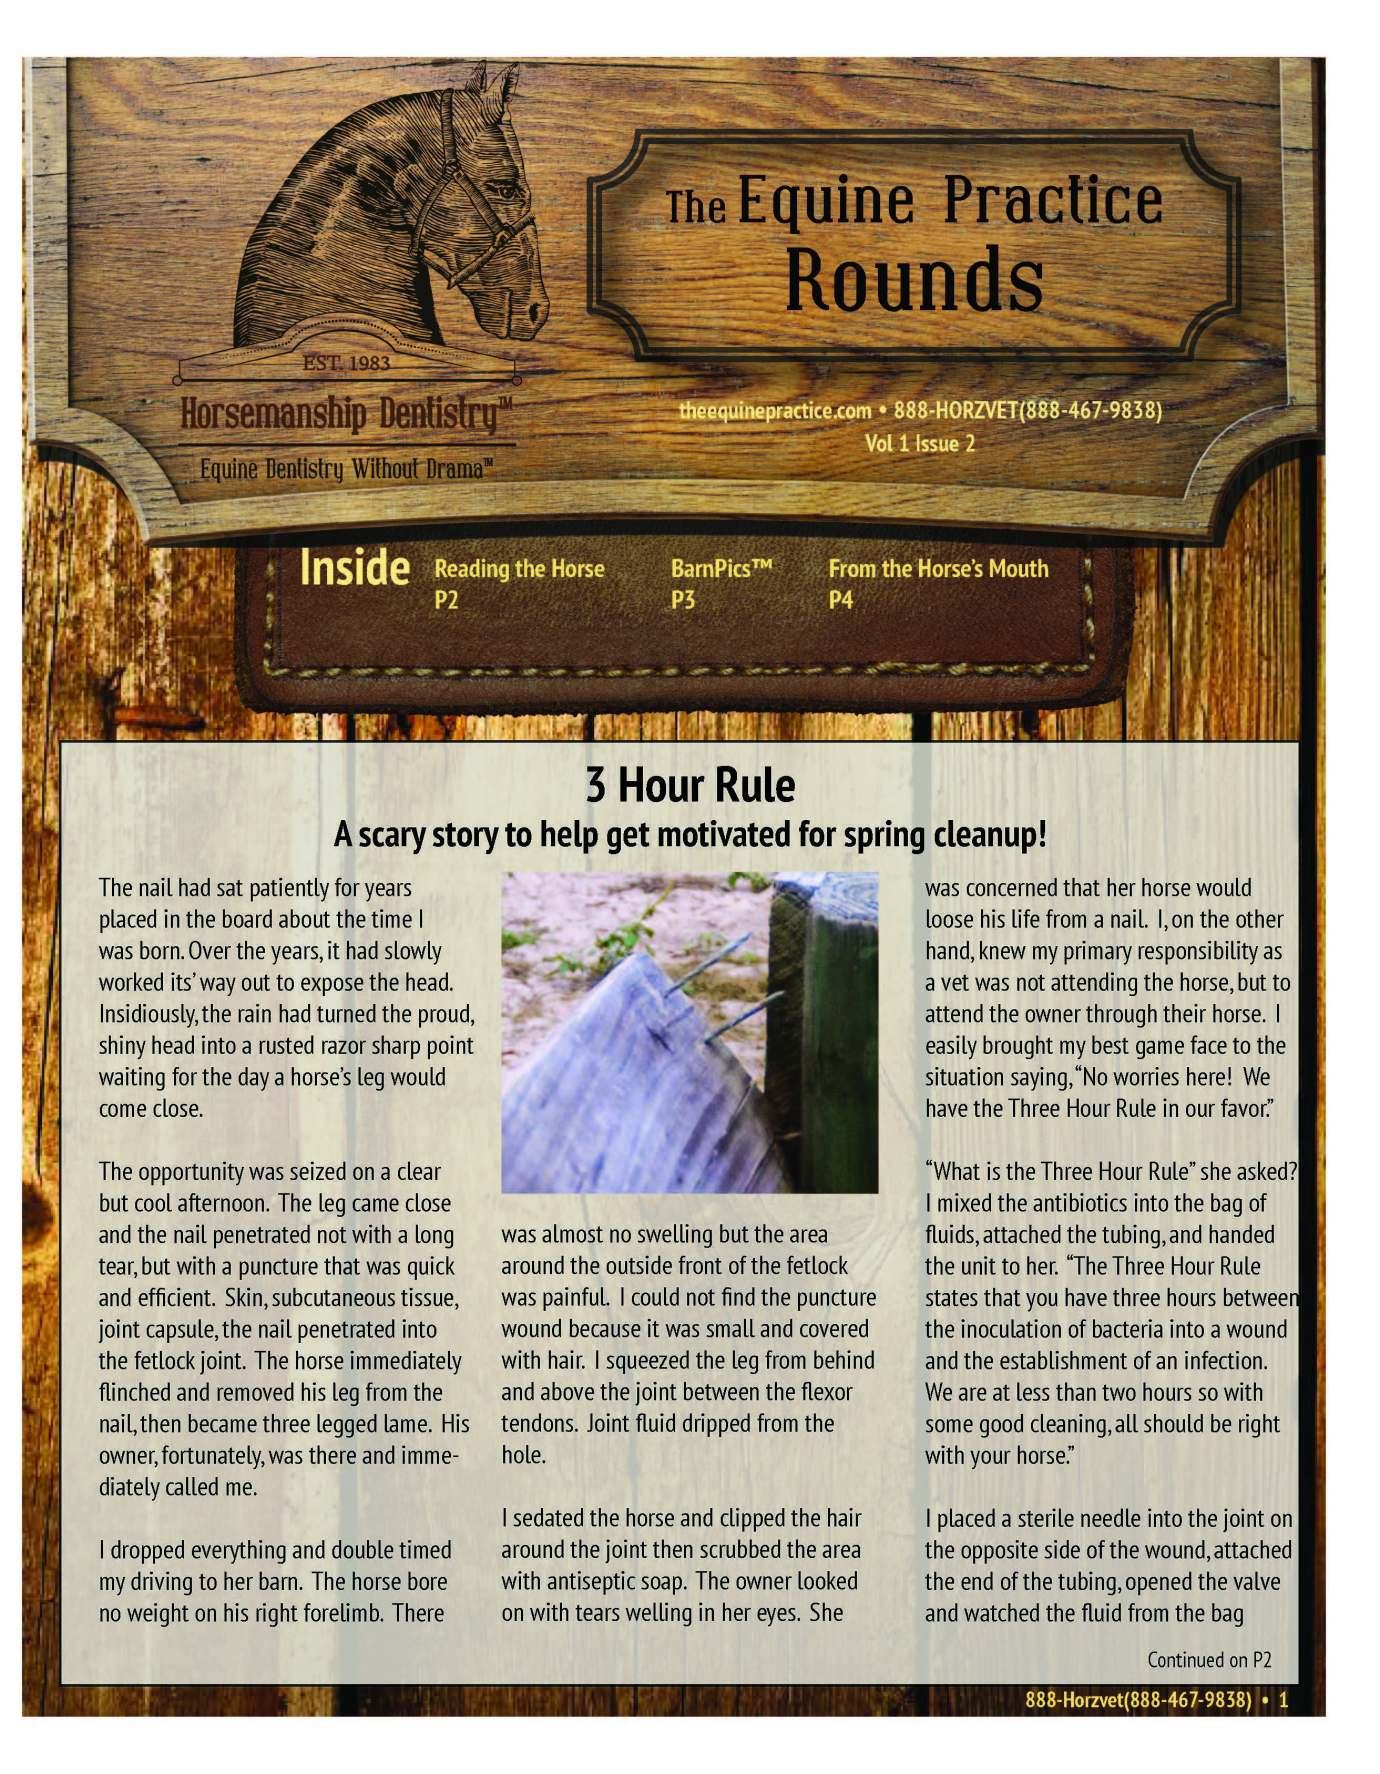 The Equine Practice Rounds™ Vol 1 Issue 2 page 1 of 4